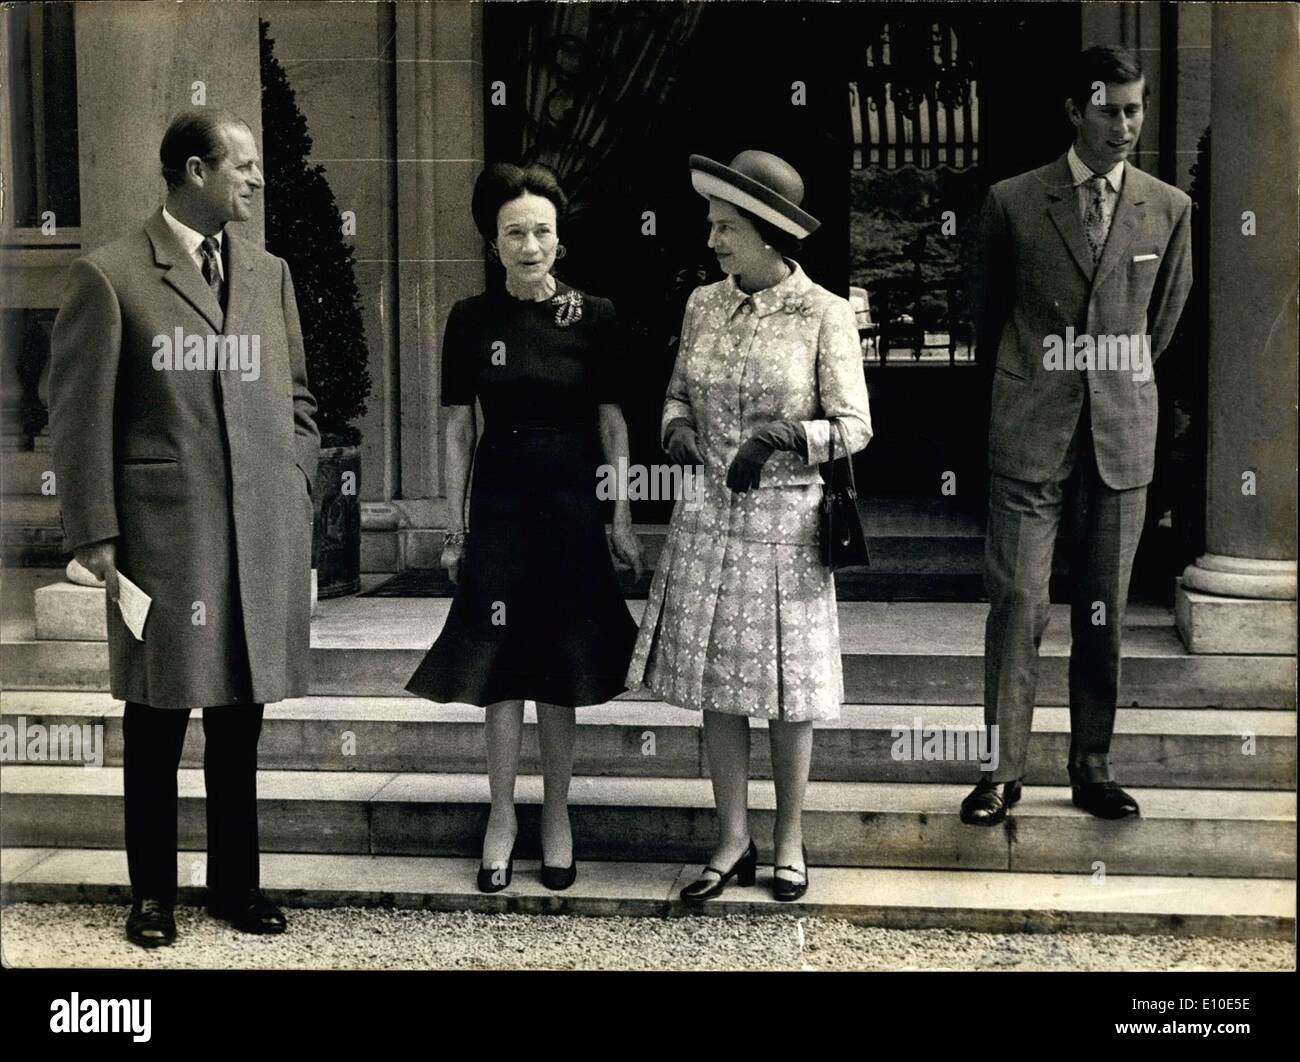 May 05, 1972 - The Queen, the Duke of Edinborough, and Prince Philip visited the Duke and Duchess of Windsor at their home in Bois de Boulogne. The Duke, who keeps to his room, could only stay a few minutes to visit with the Queen. They are pictured above on the steps o - Stock Image